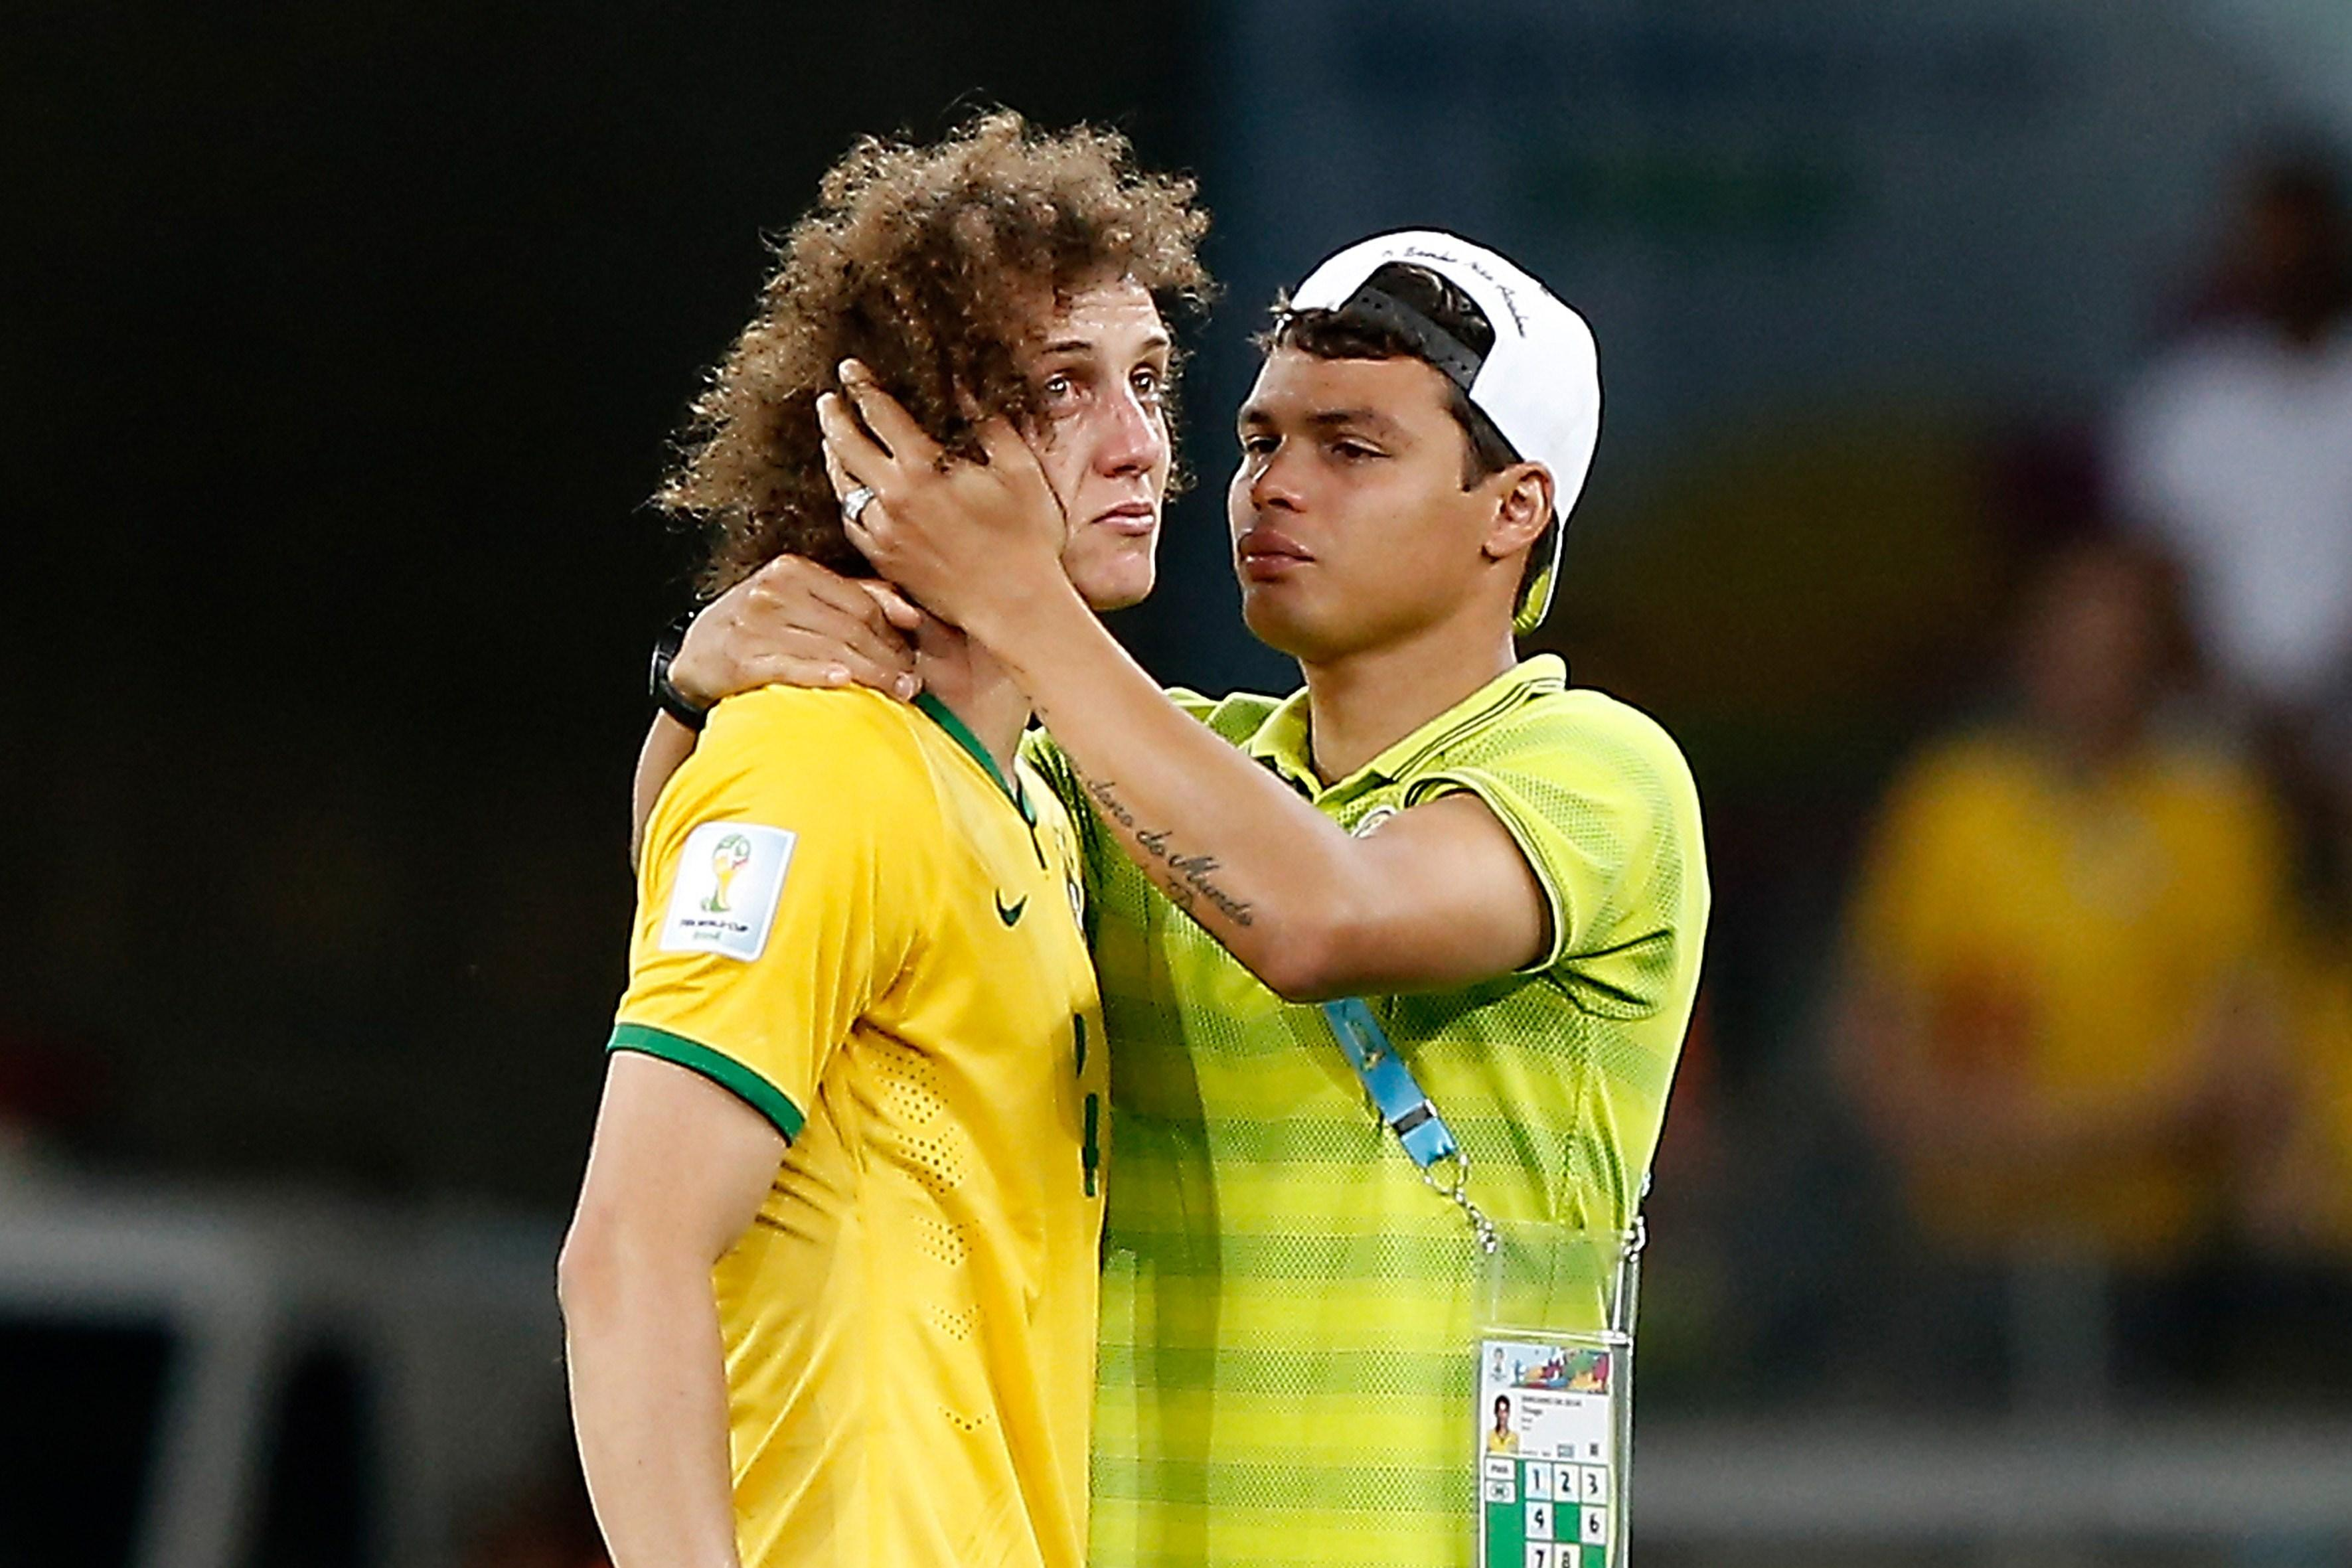 What the f**k was Thiago Silva wearing as well?